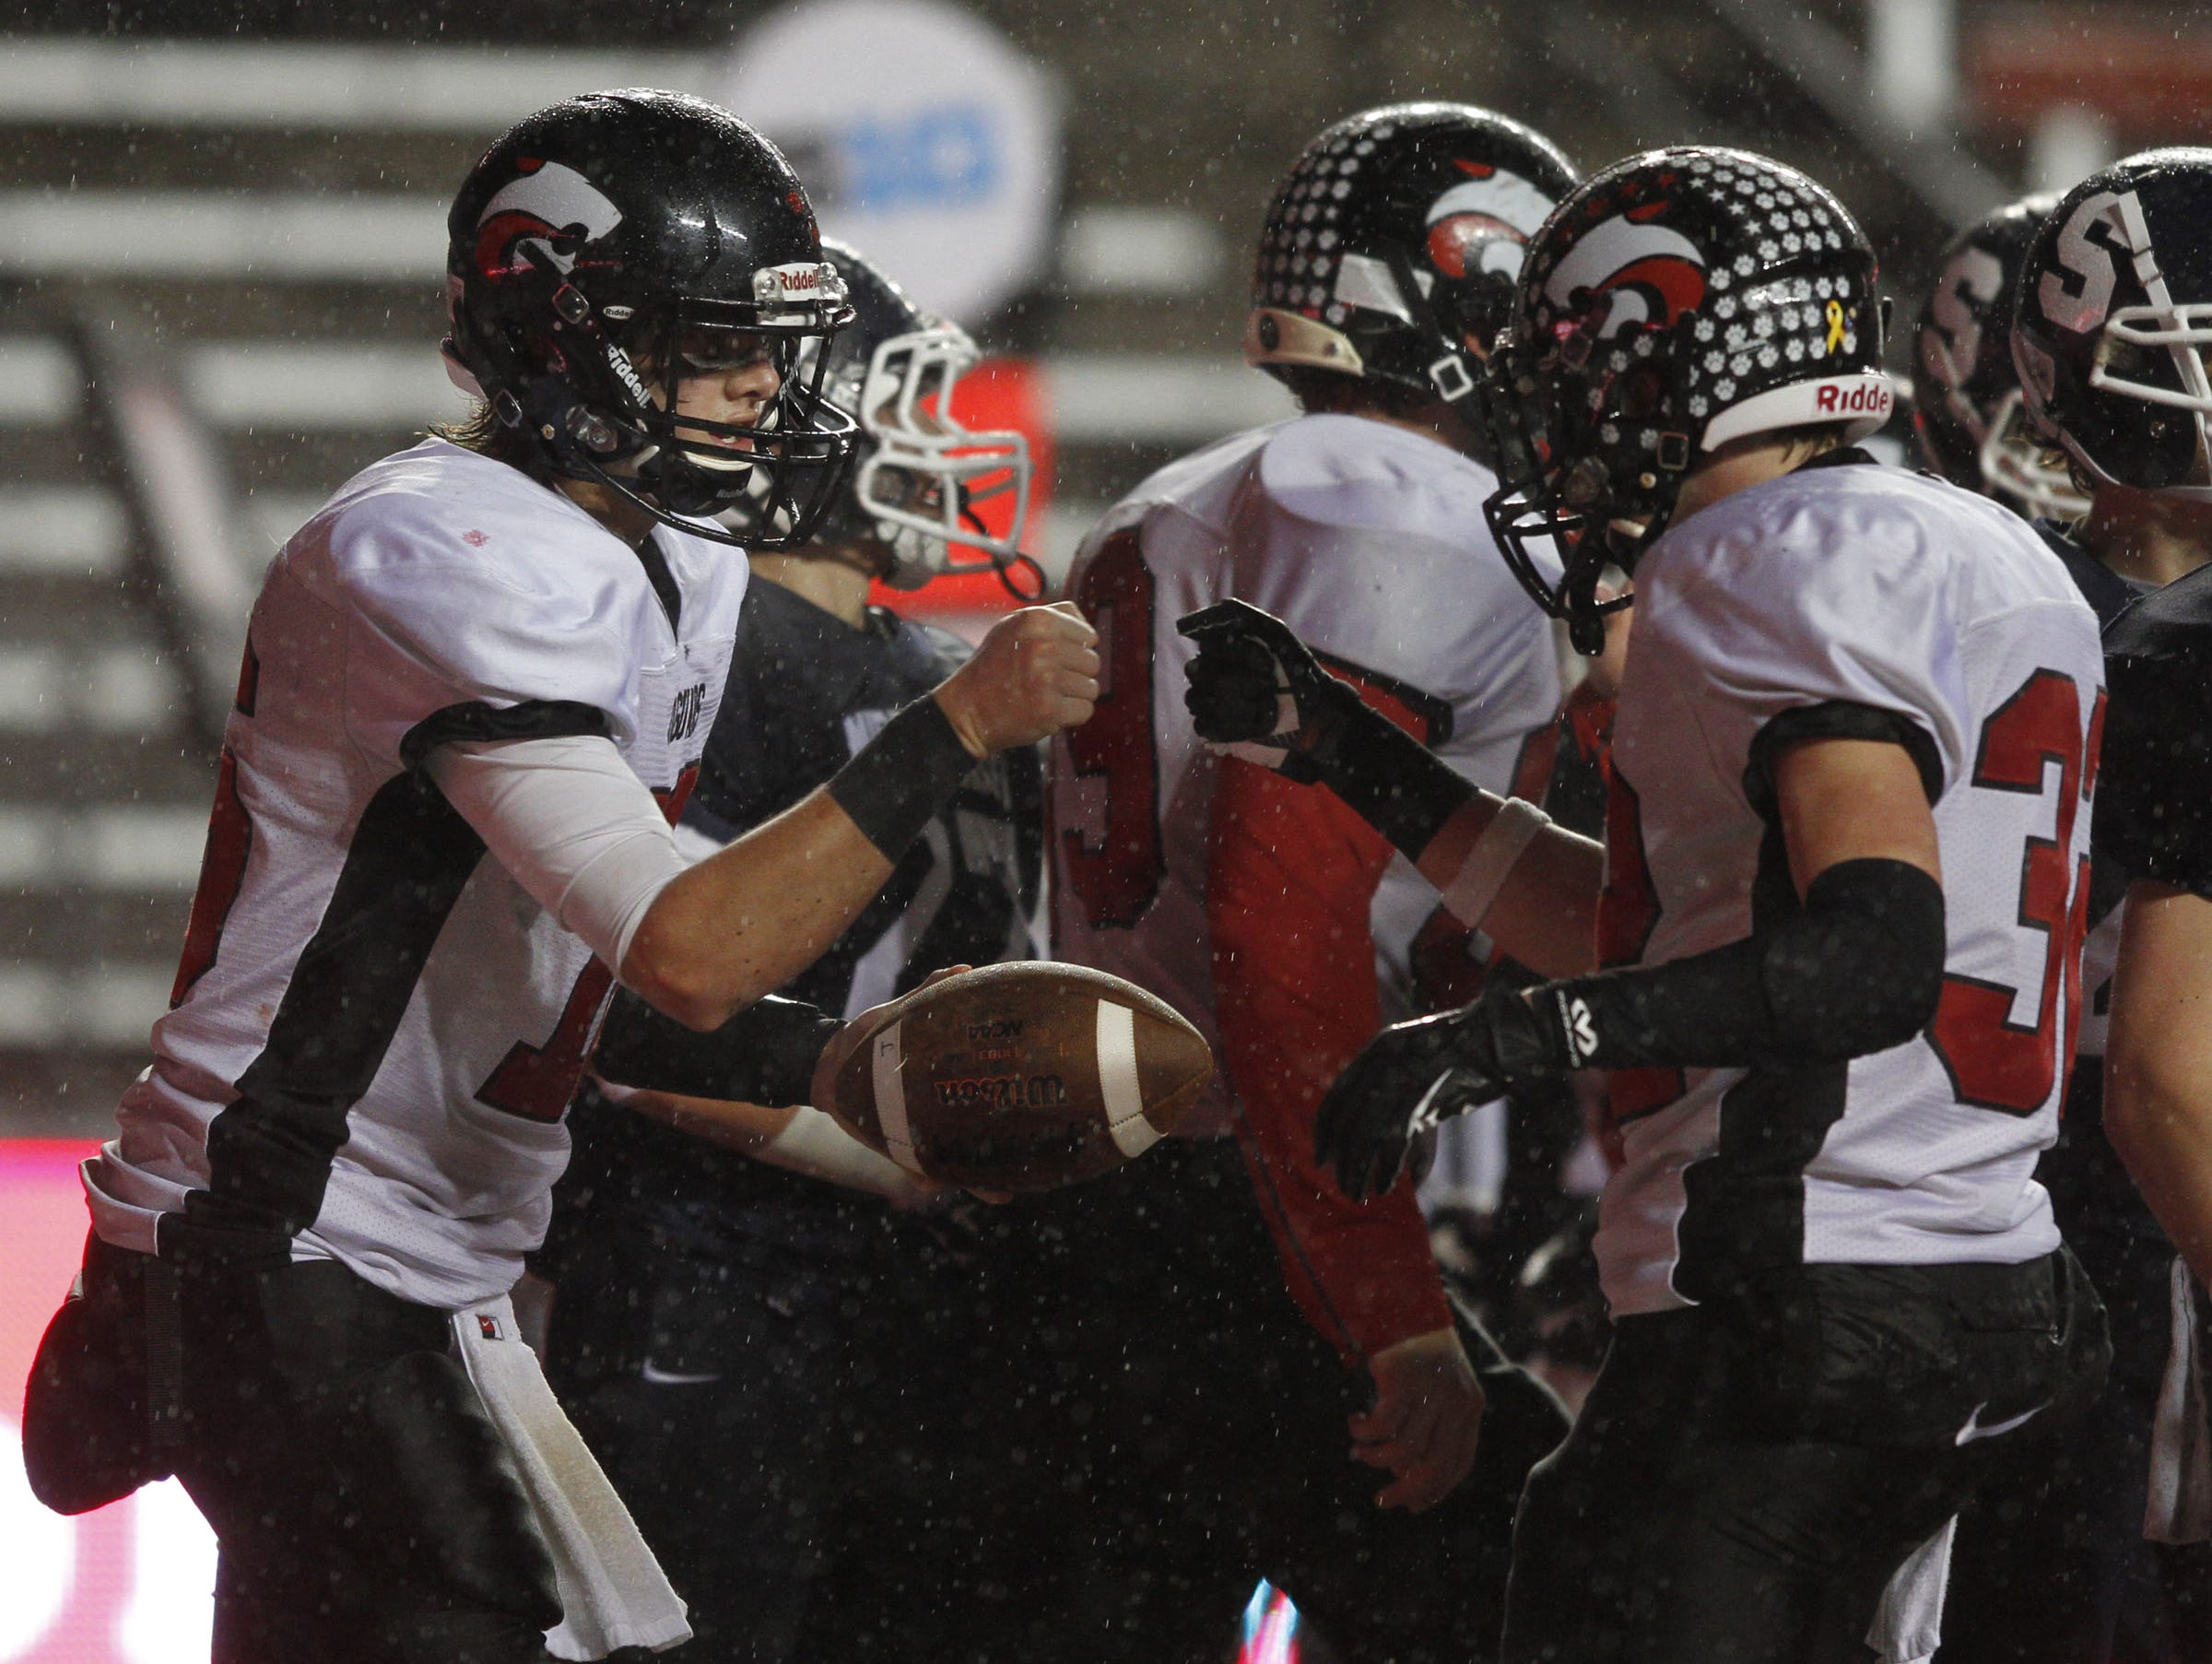 Jackson Memorial players celebrate a touchdown during their victory over Middletown South in the 2014 CJ Group IV final at Rutgers.